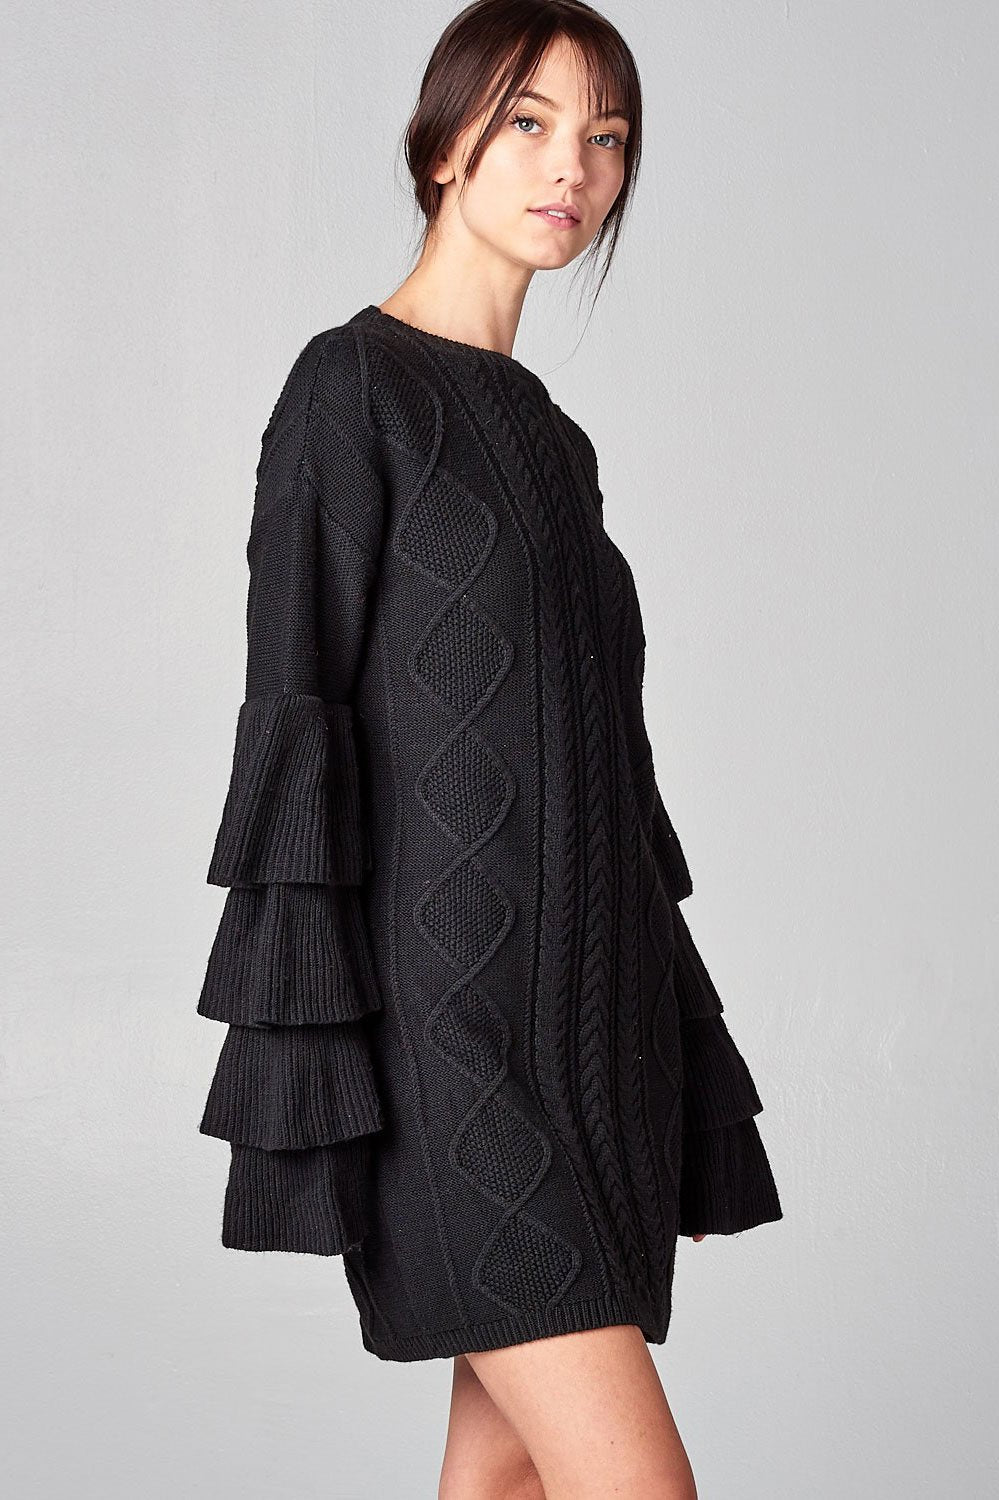 women's black cableknit mini sweater dress with layered long sleeves.